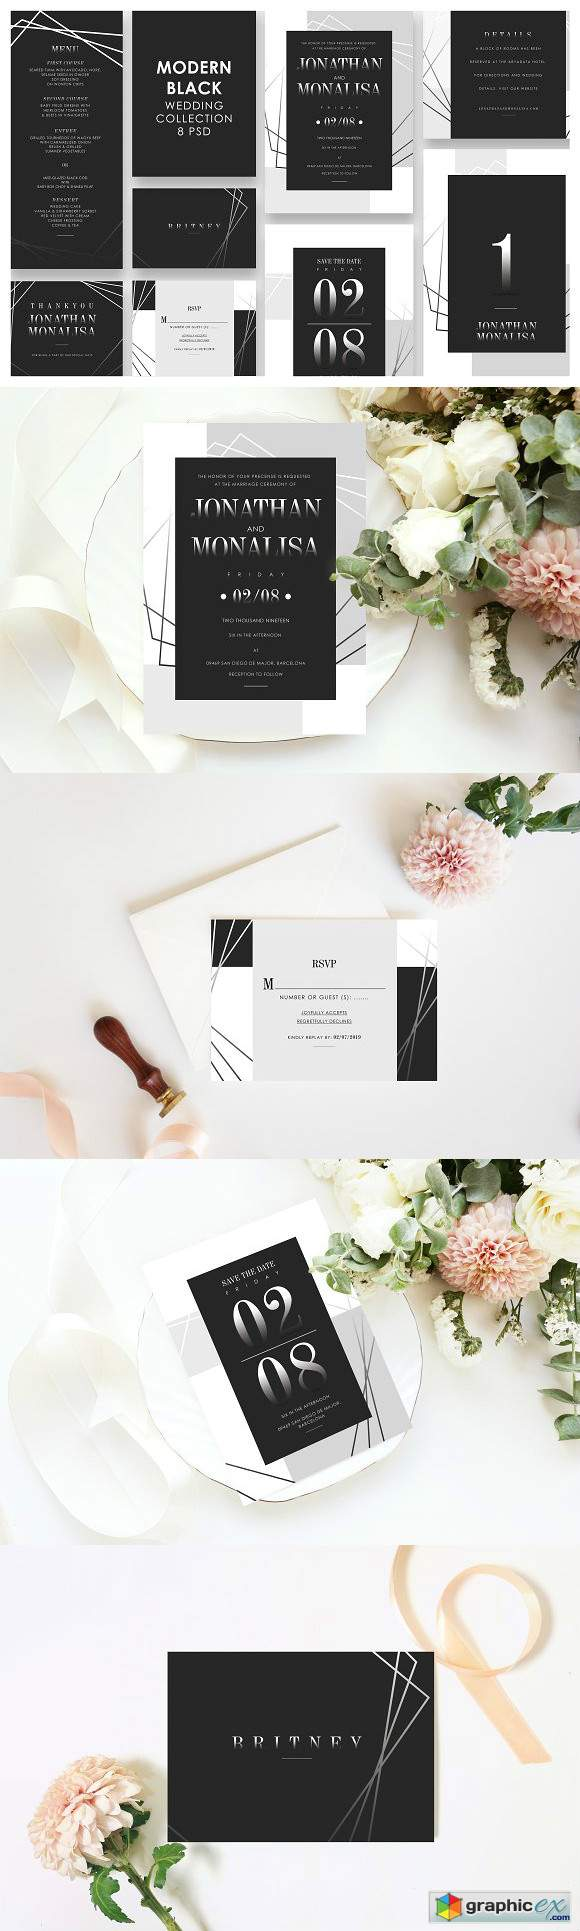 Modern Black Wedding Invitation Set